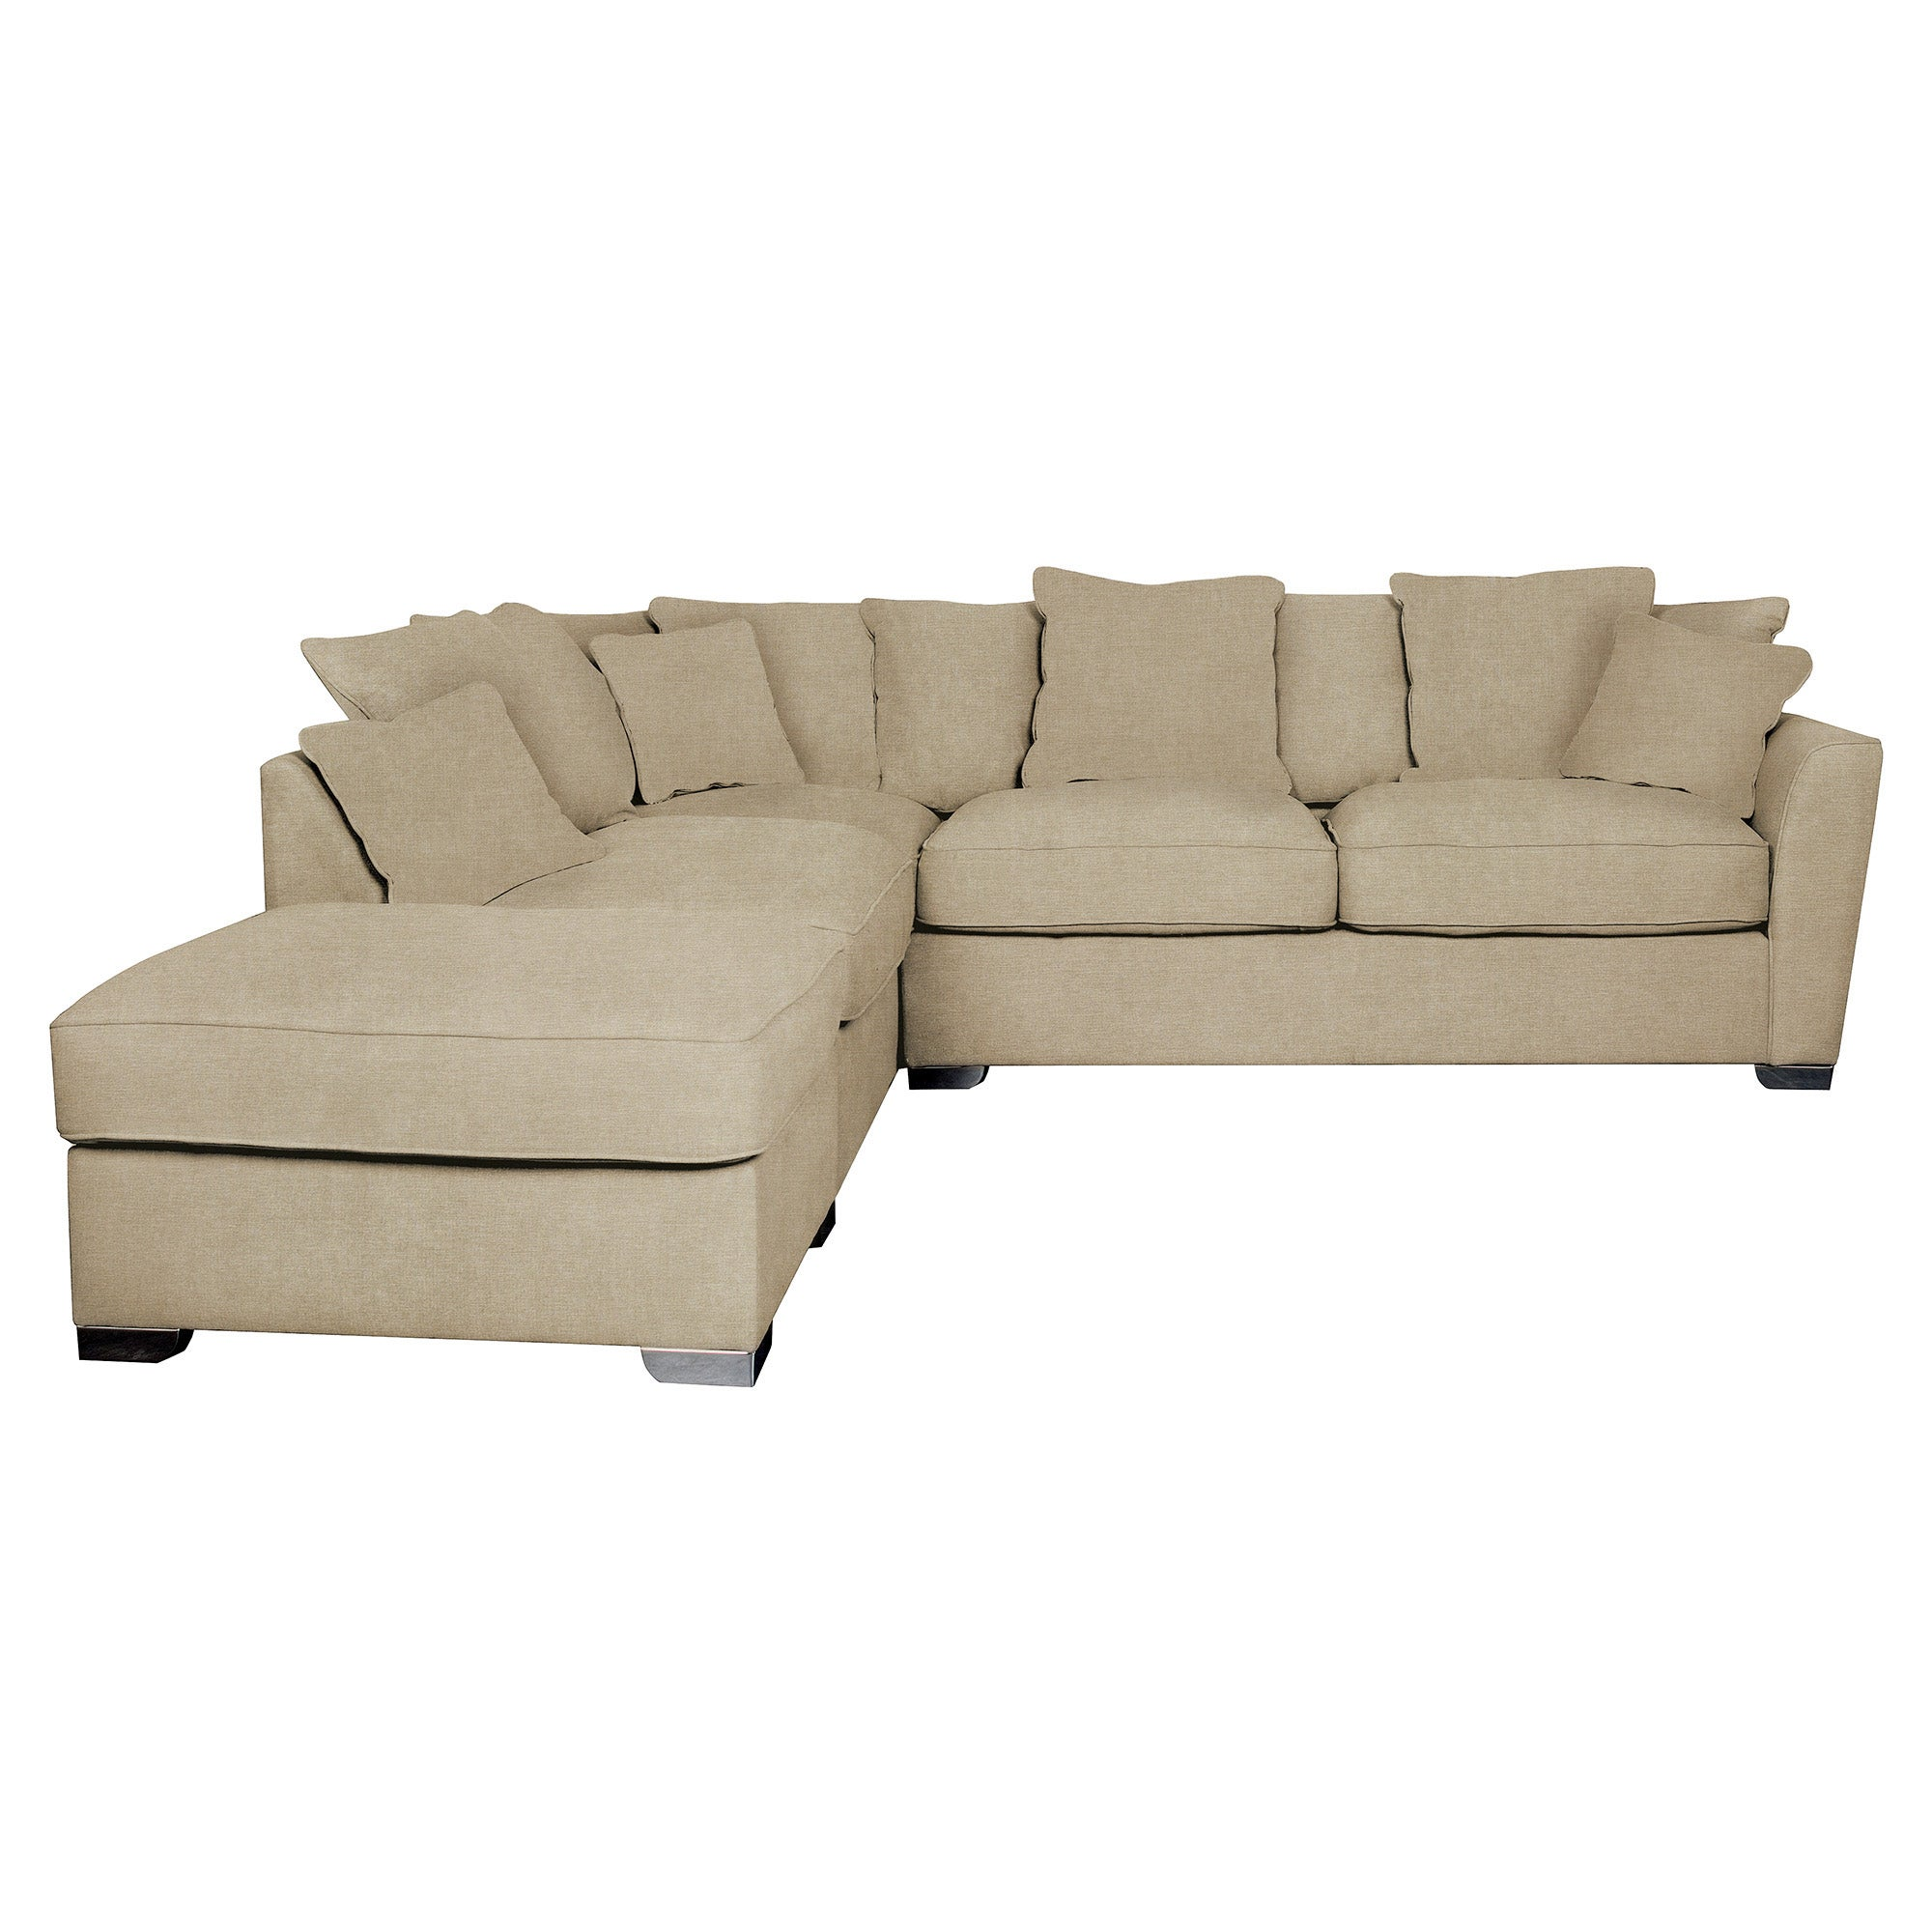 Grosvenor Corner Sofa